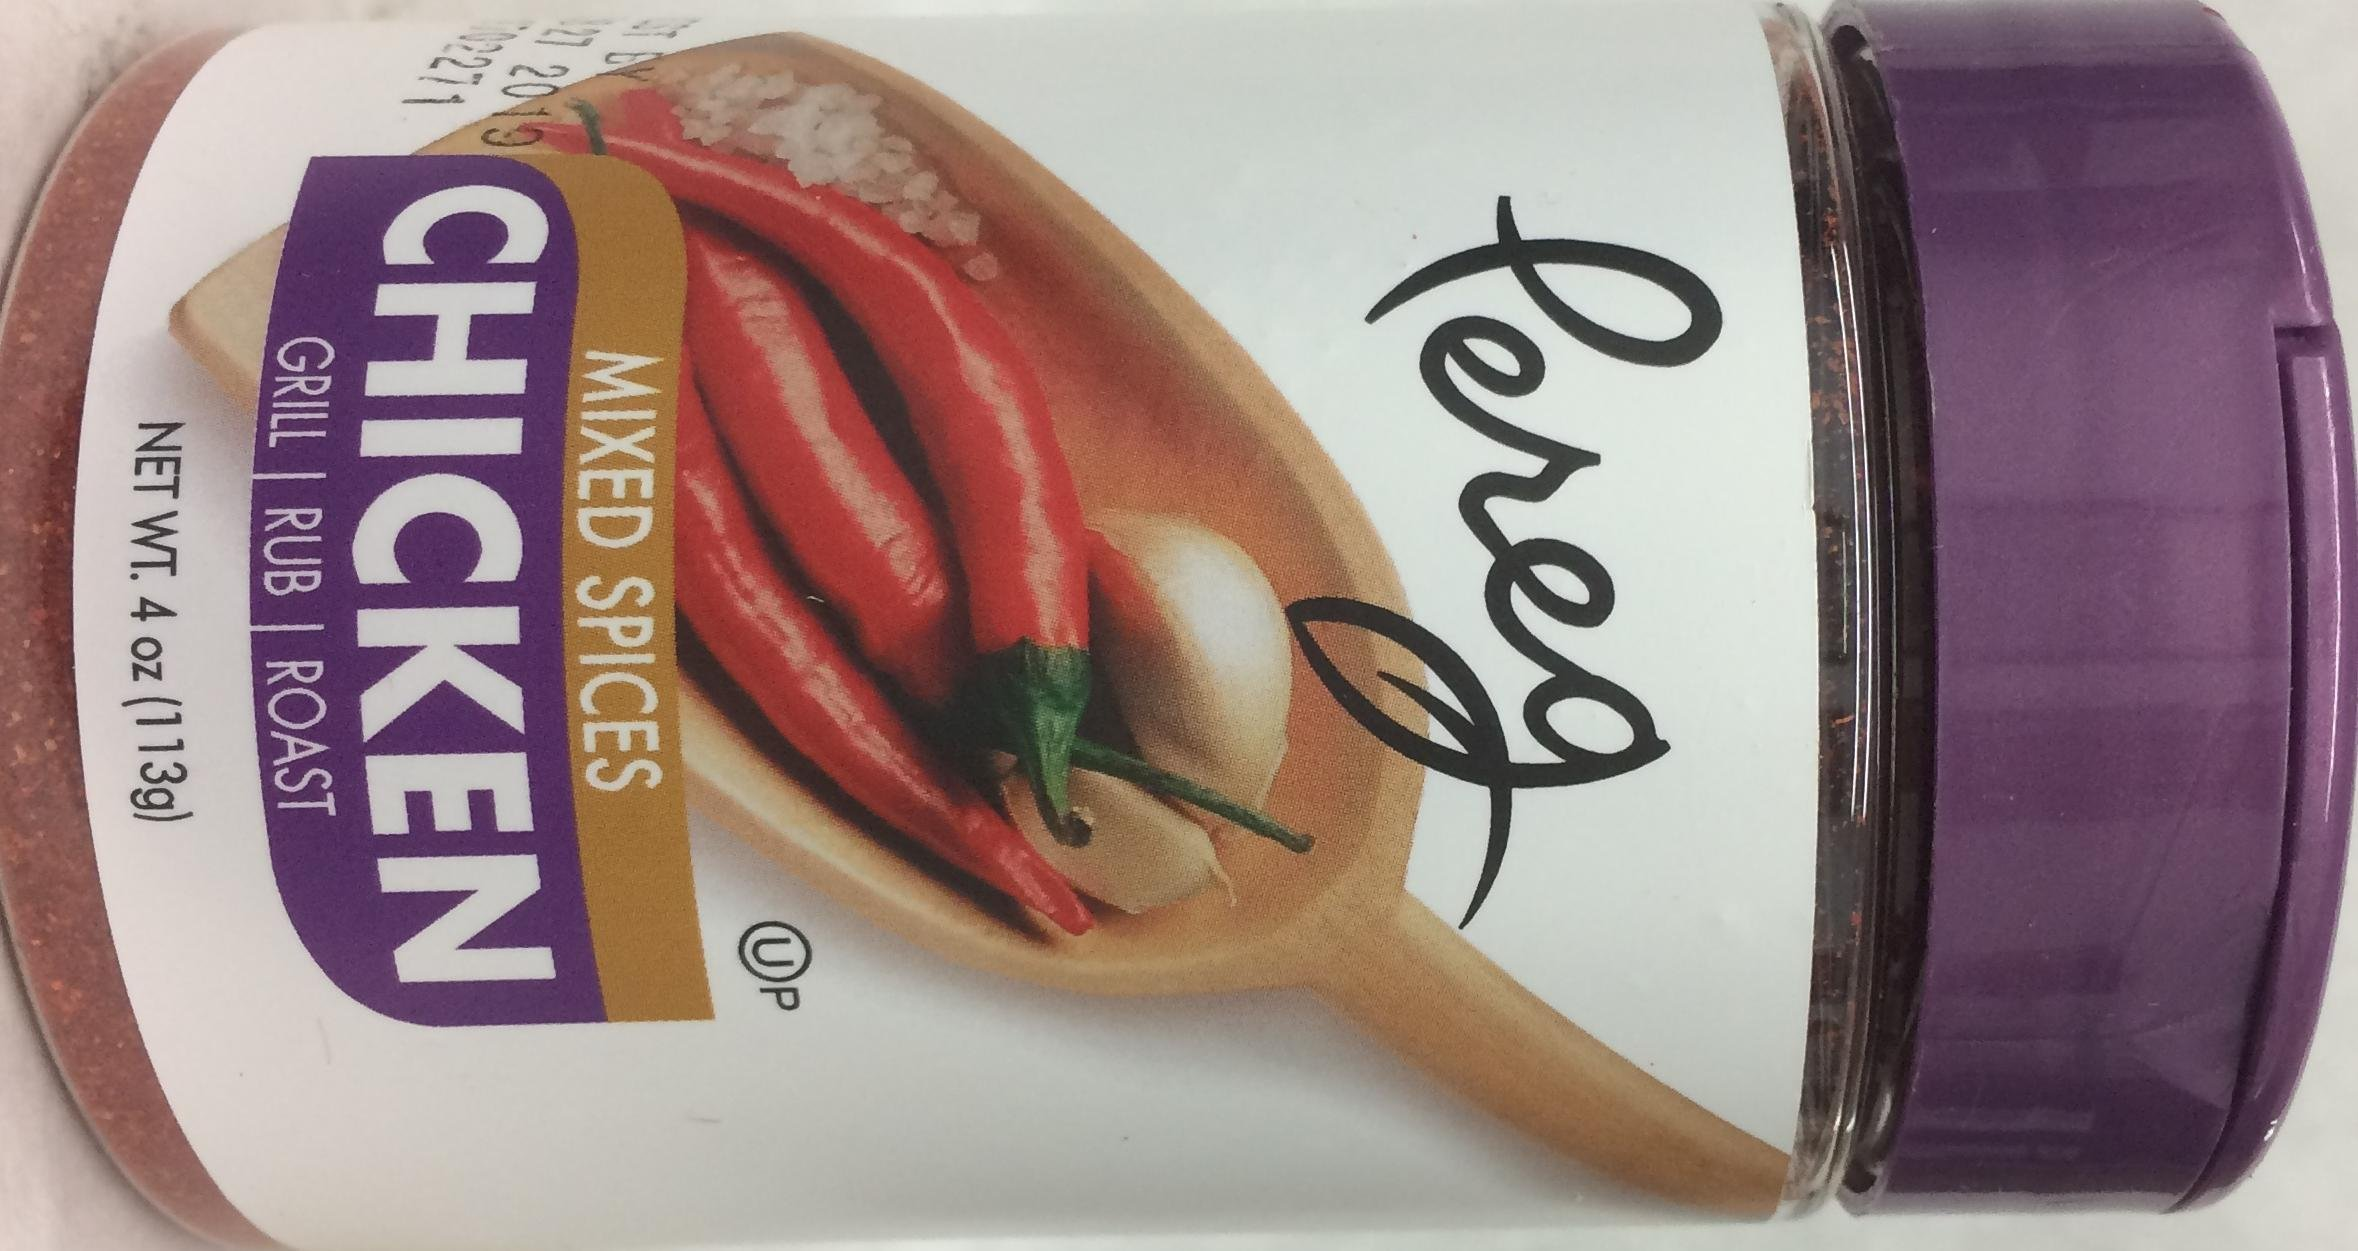 Pereg Mixed Spices Chicken Kosher For Passover 4 Oz. Pack Of 1.